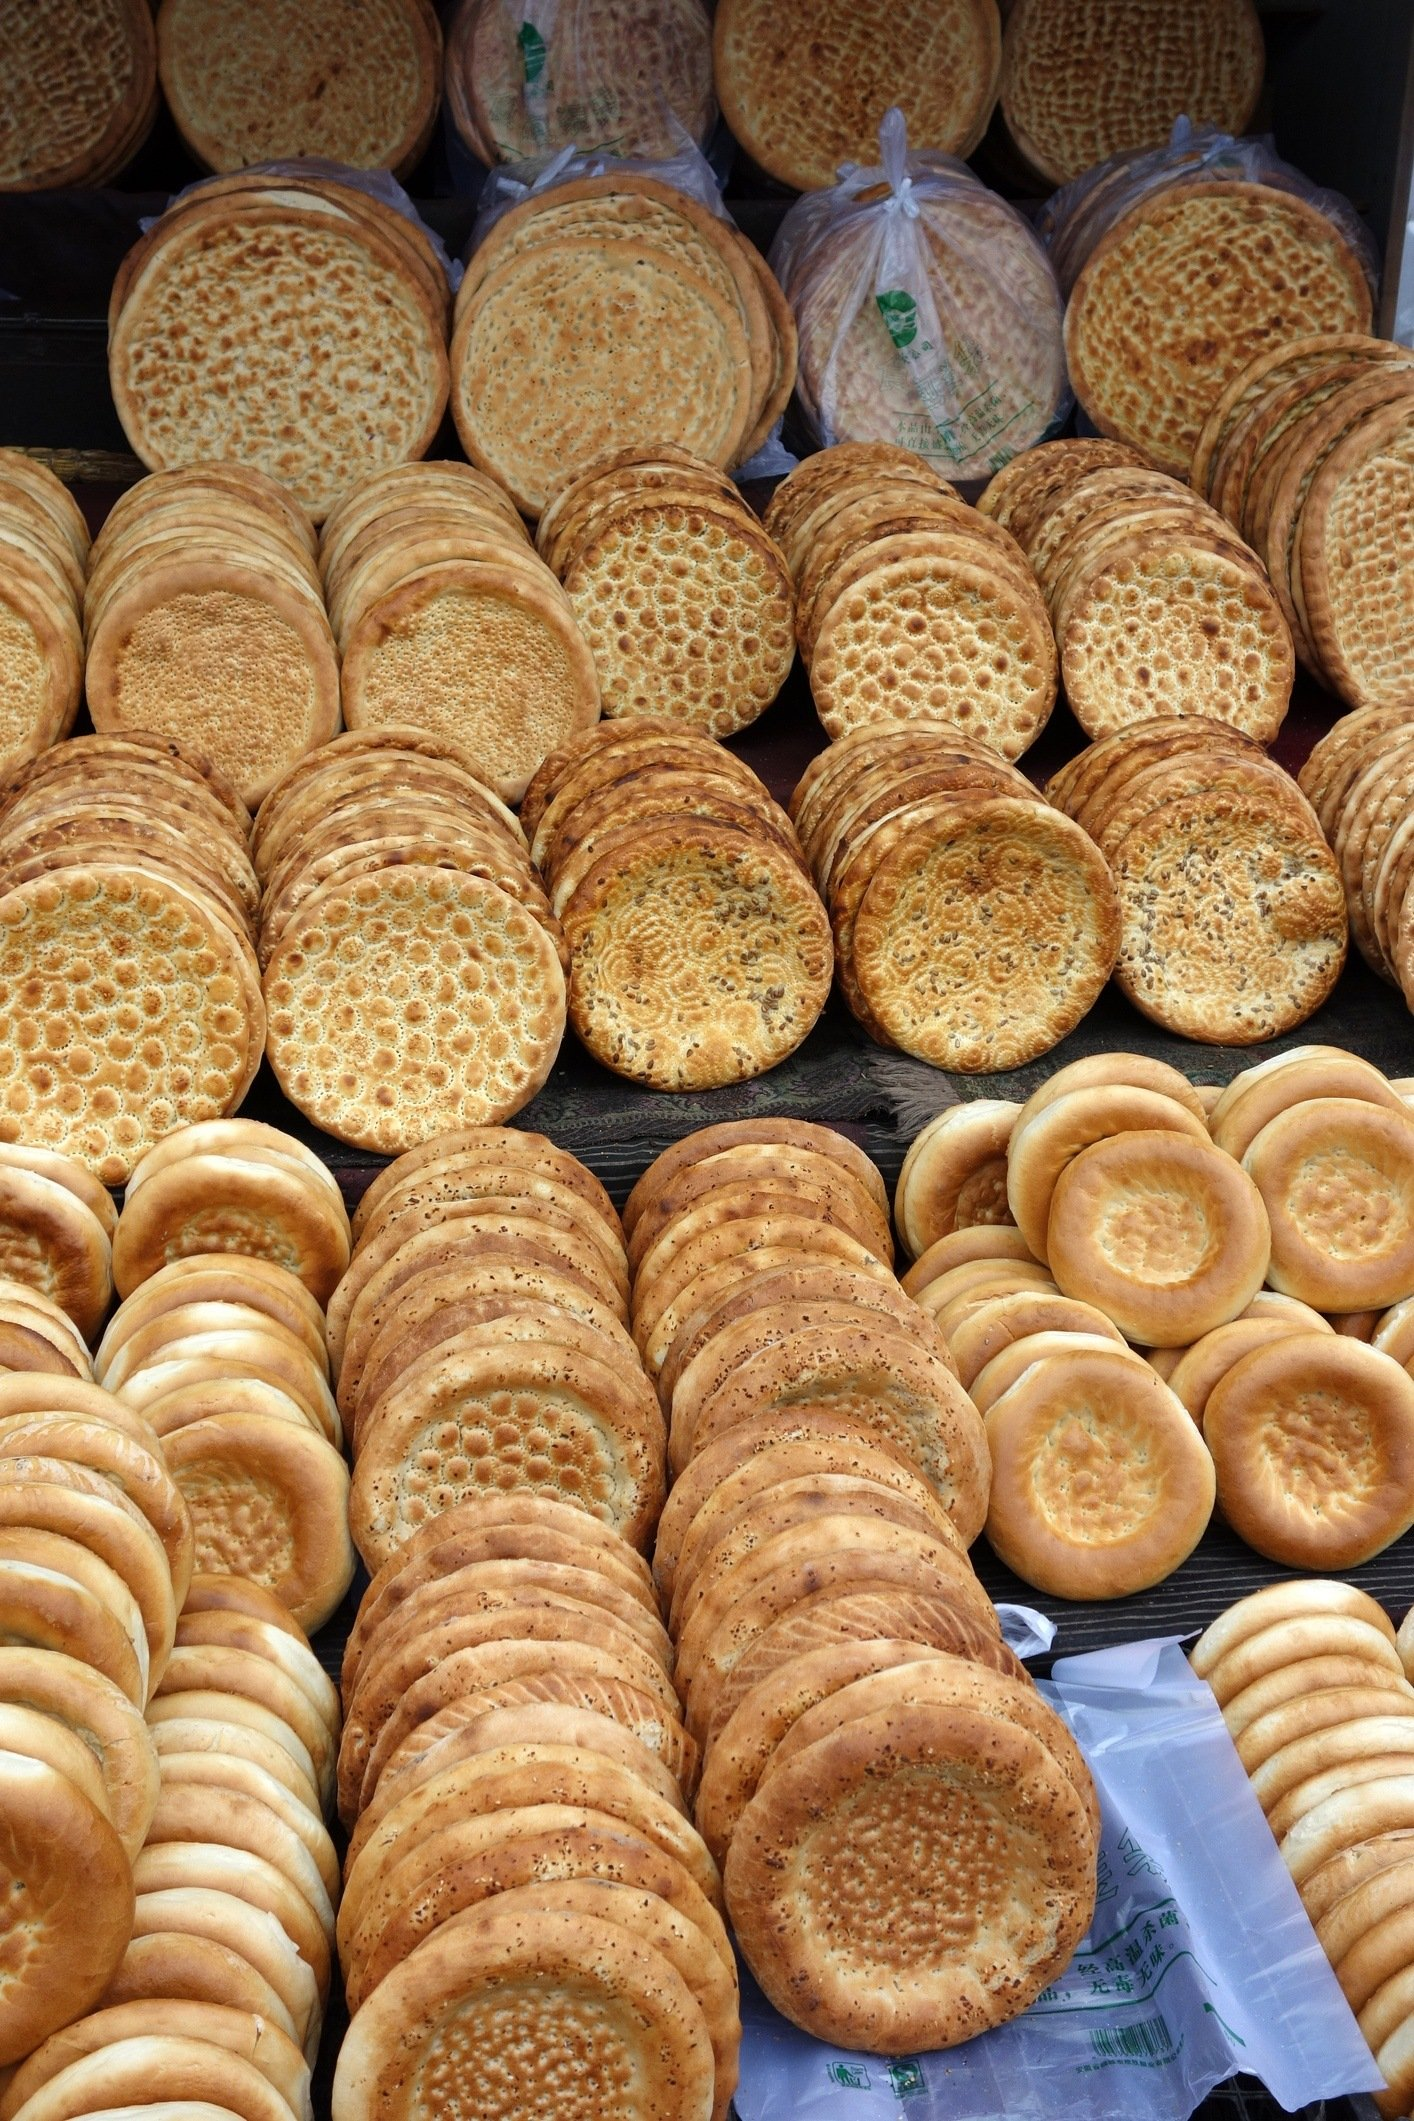 Nang bread is a very popular food in Urumqi, China.